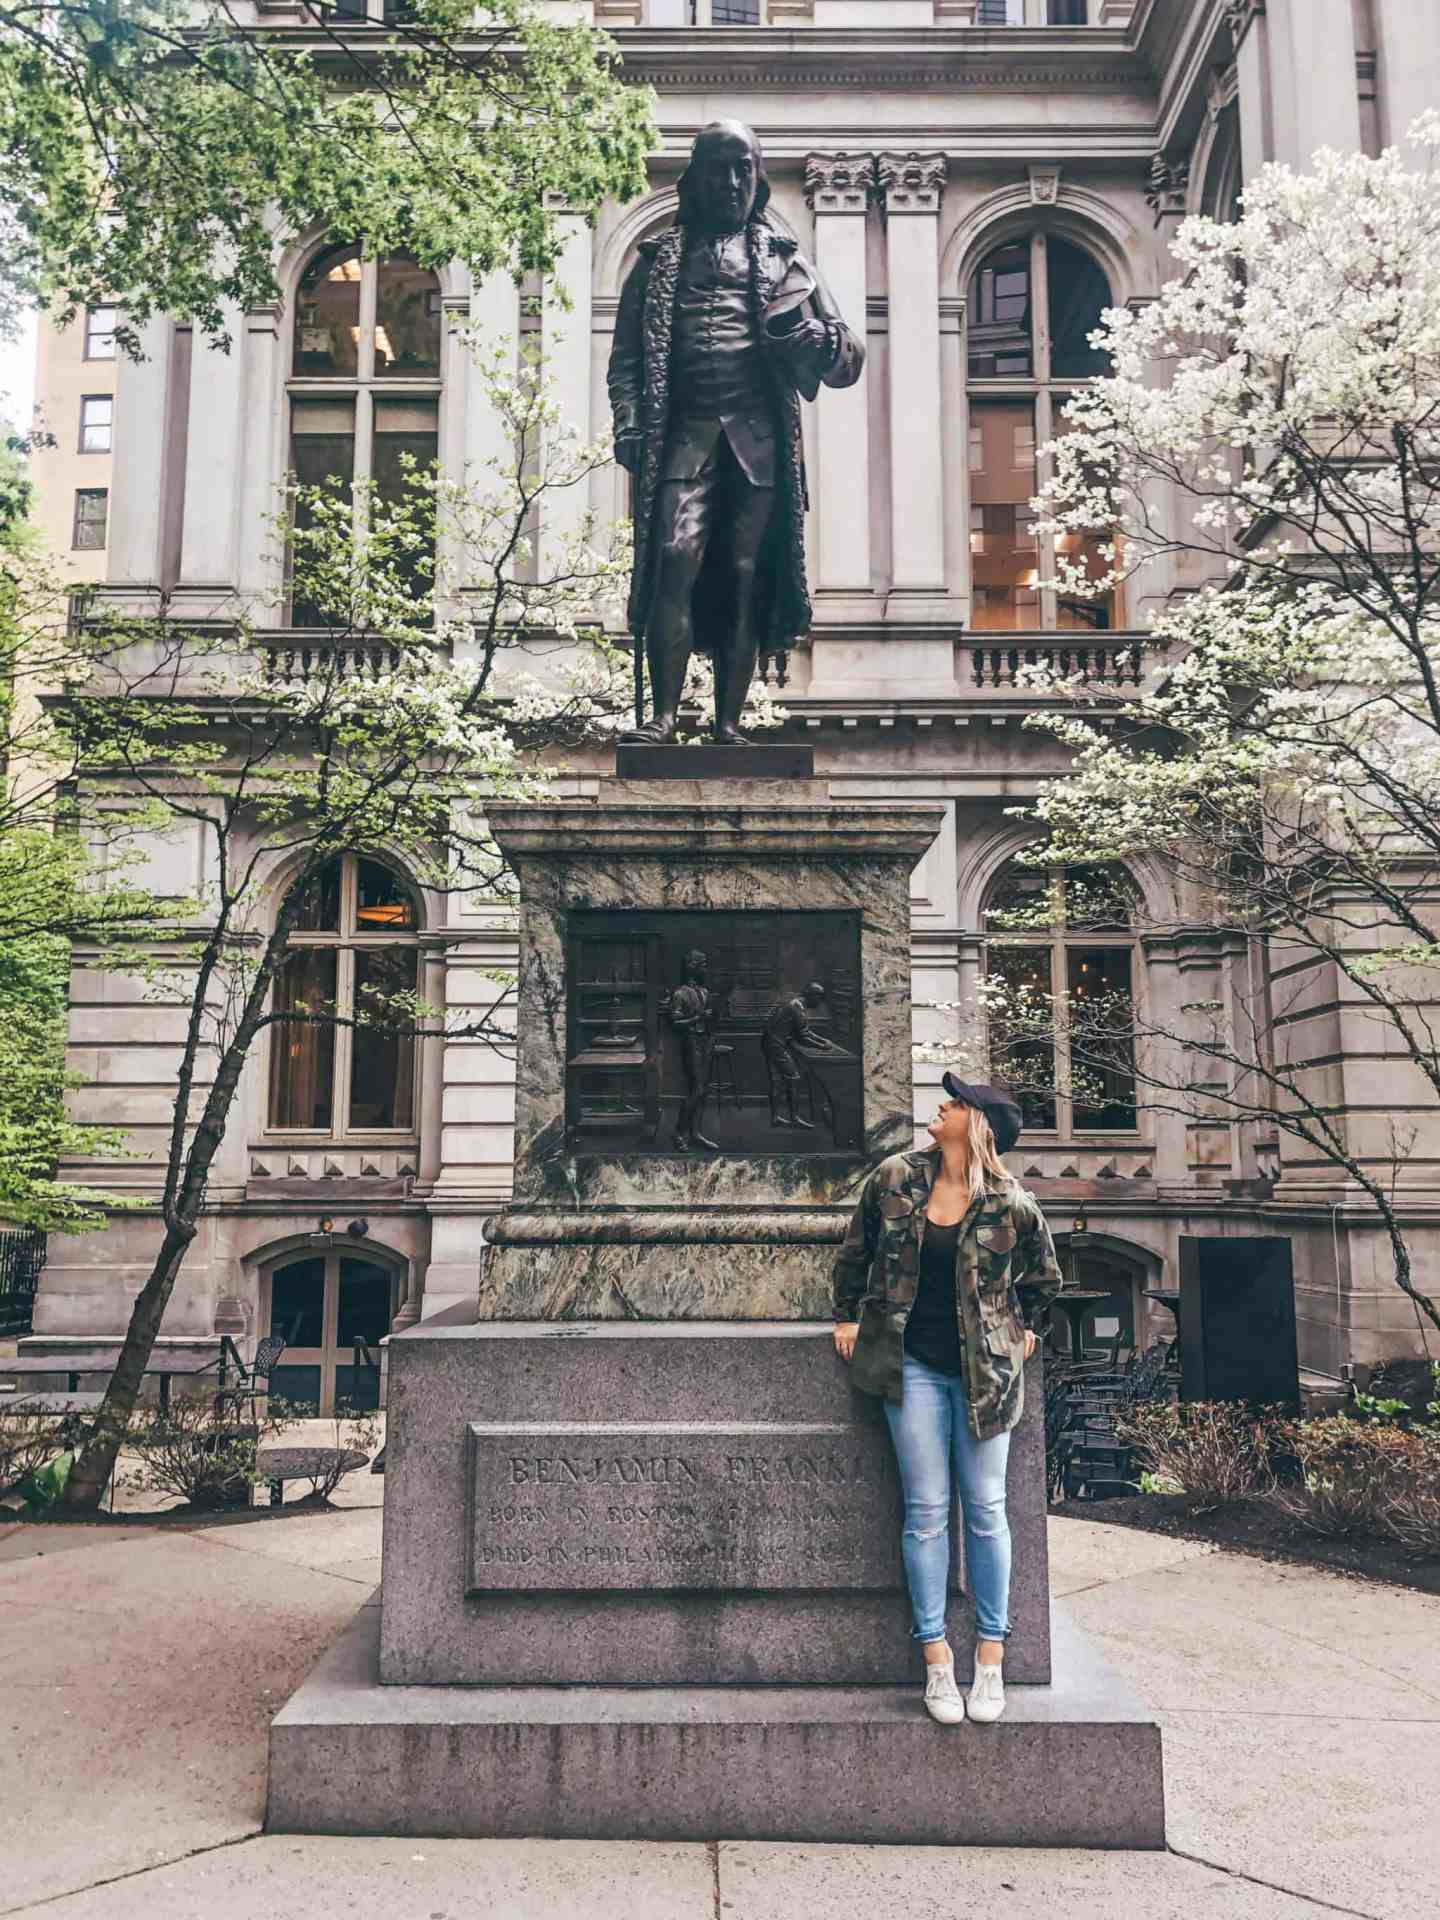 Complete Guide to Boston - The Freedom Trail